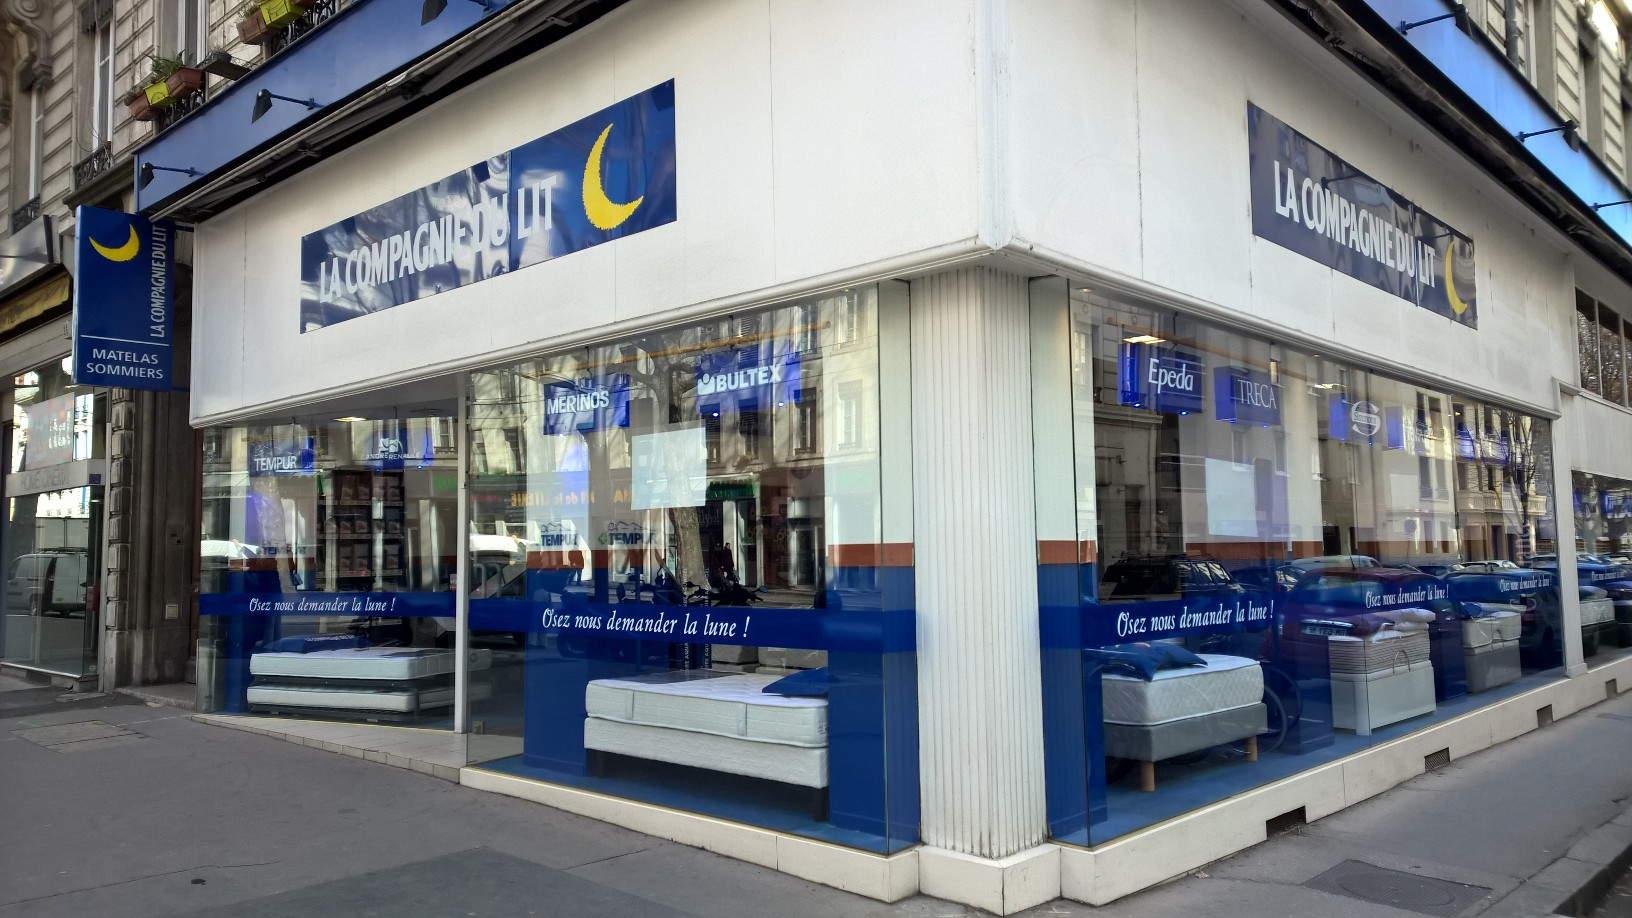 Magasin De Cheminees Magasin Bricolage Grenoble Magasin De Bricolage Grenoble